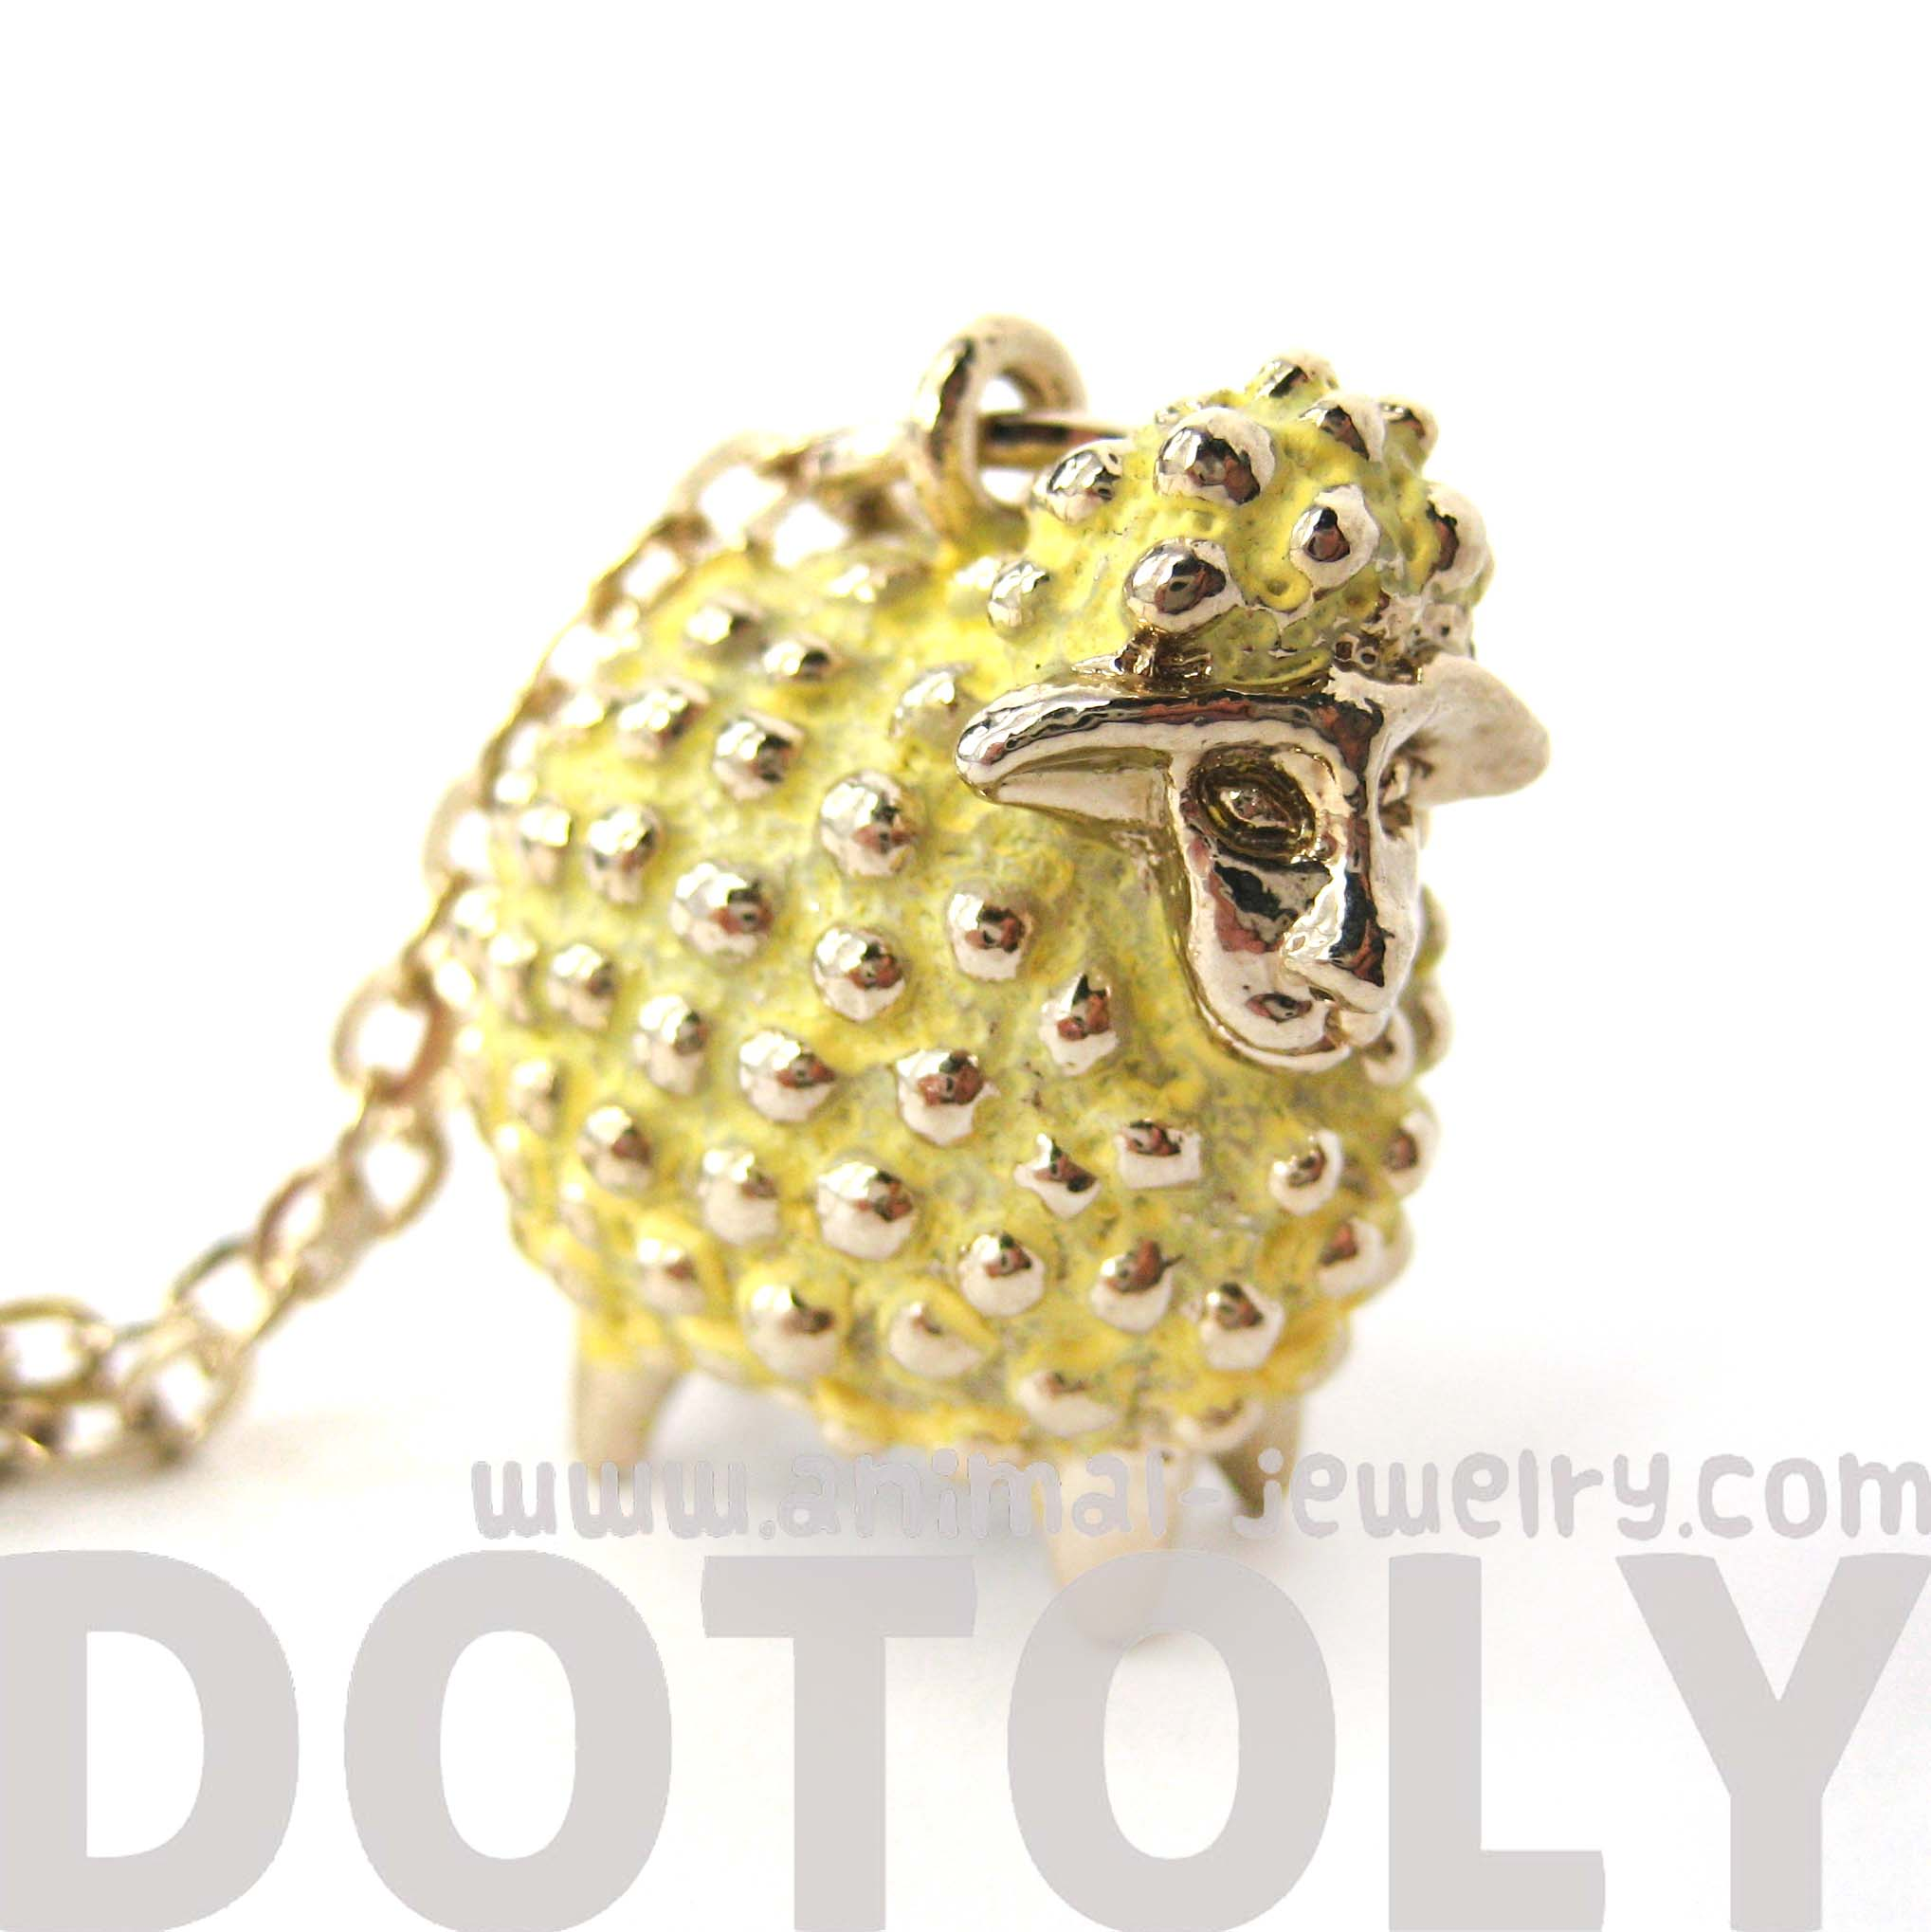 sheep-lamb-animal-pendant-necklace-in-yellow-animal-jewelry